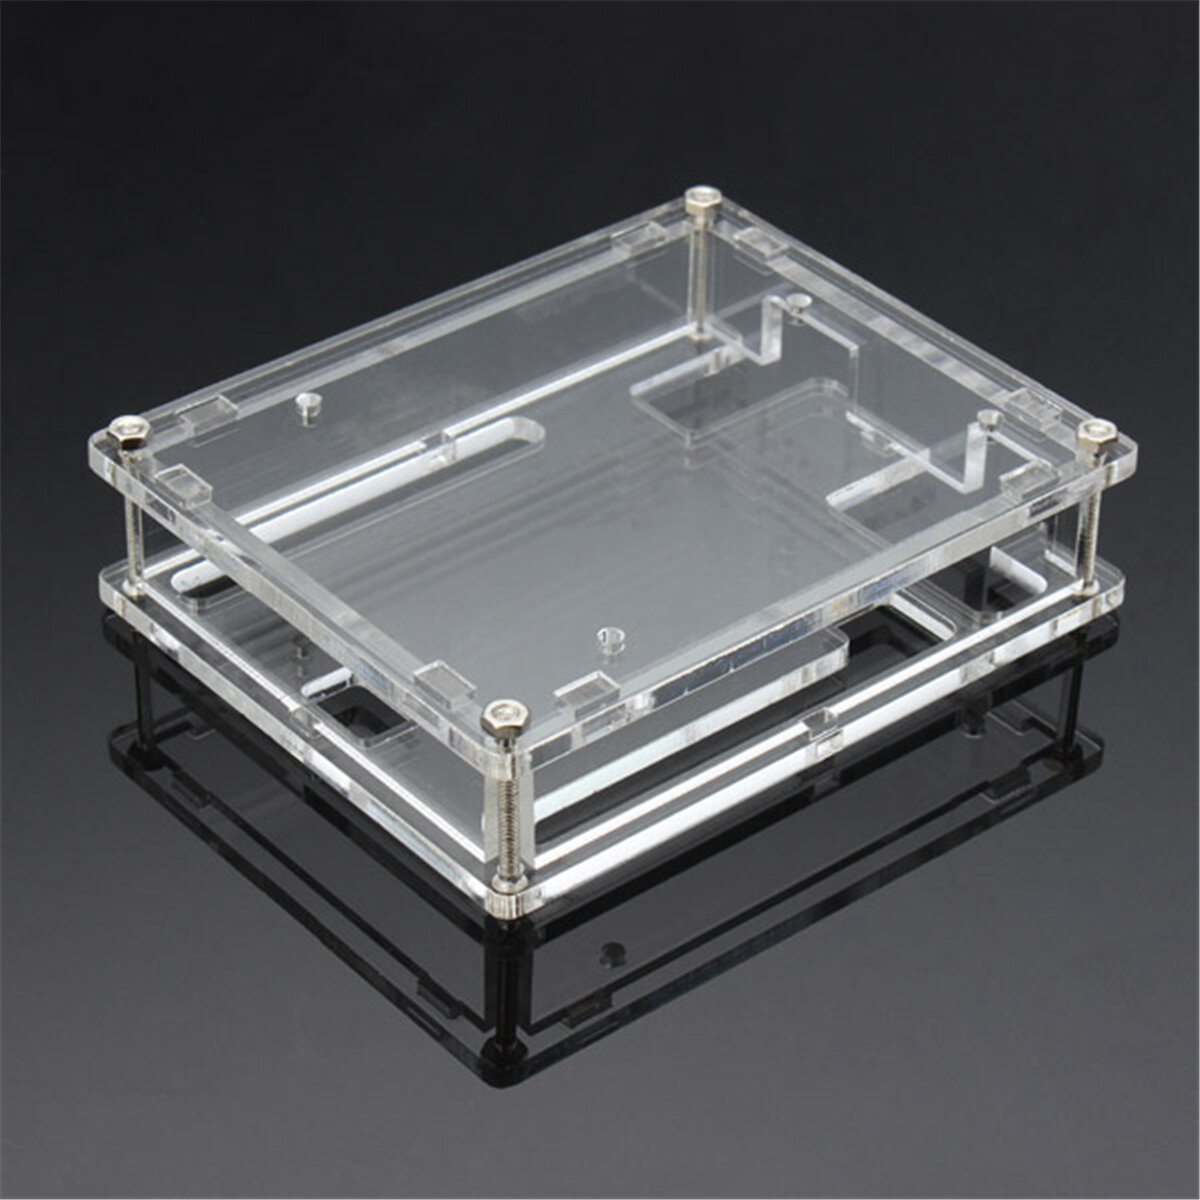 Transparent Acrylic Shell Box For Arduino UNO R3 Module Case